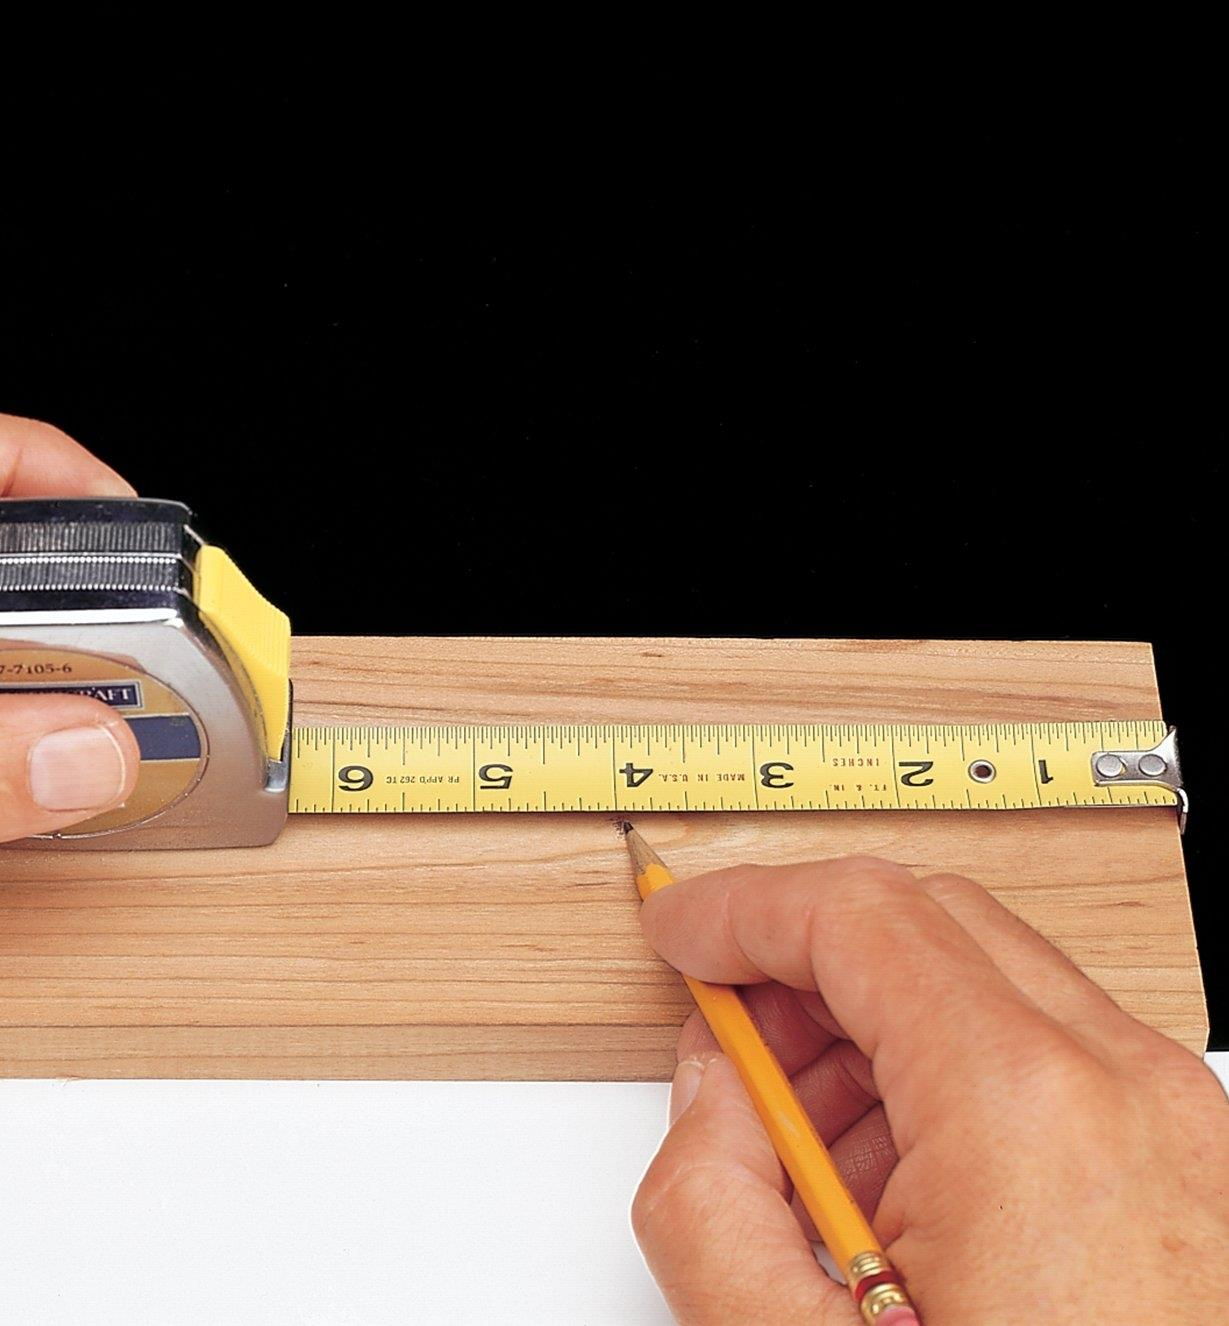 Standard tape measure